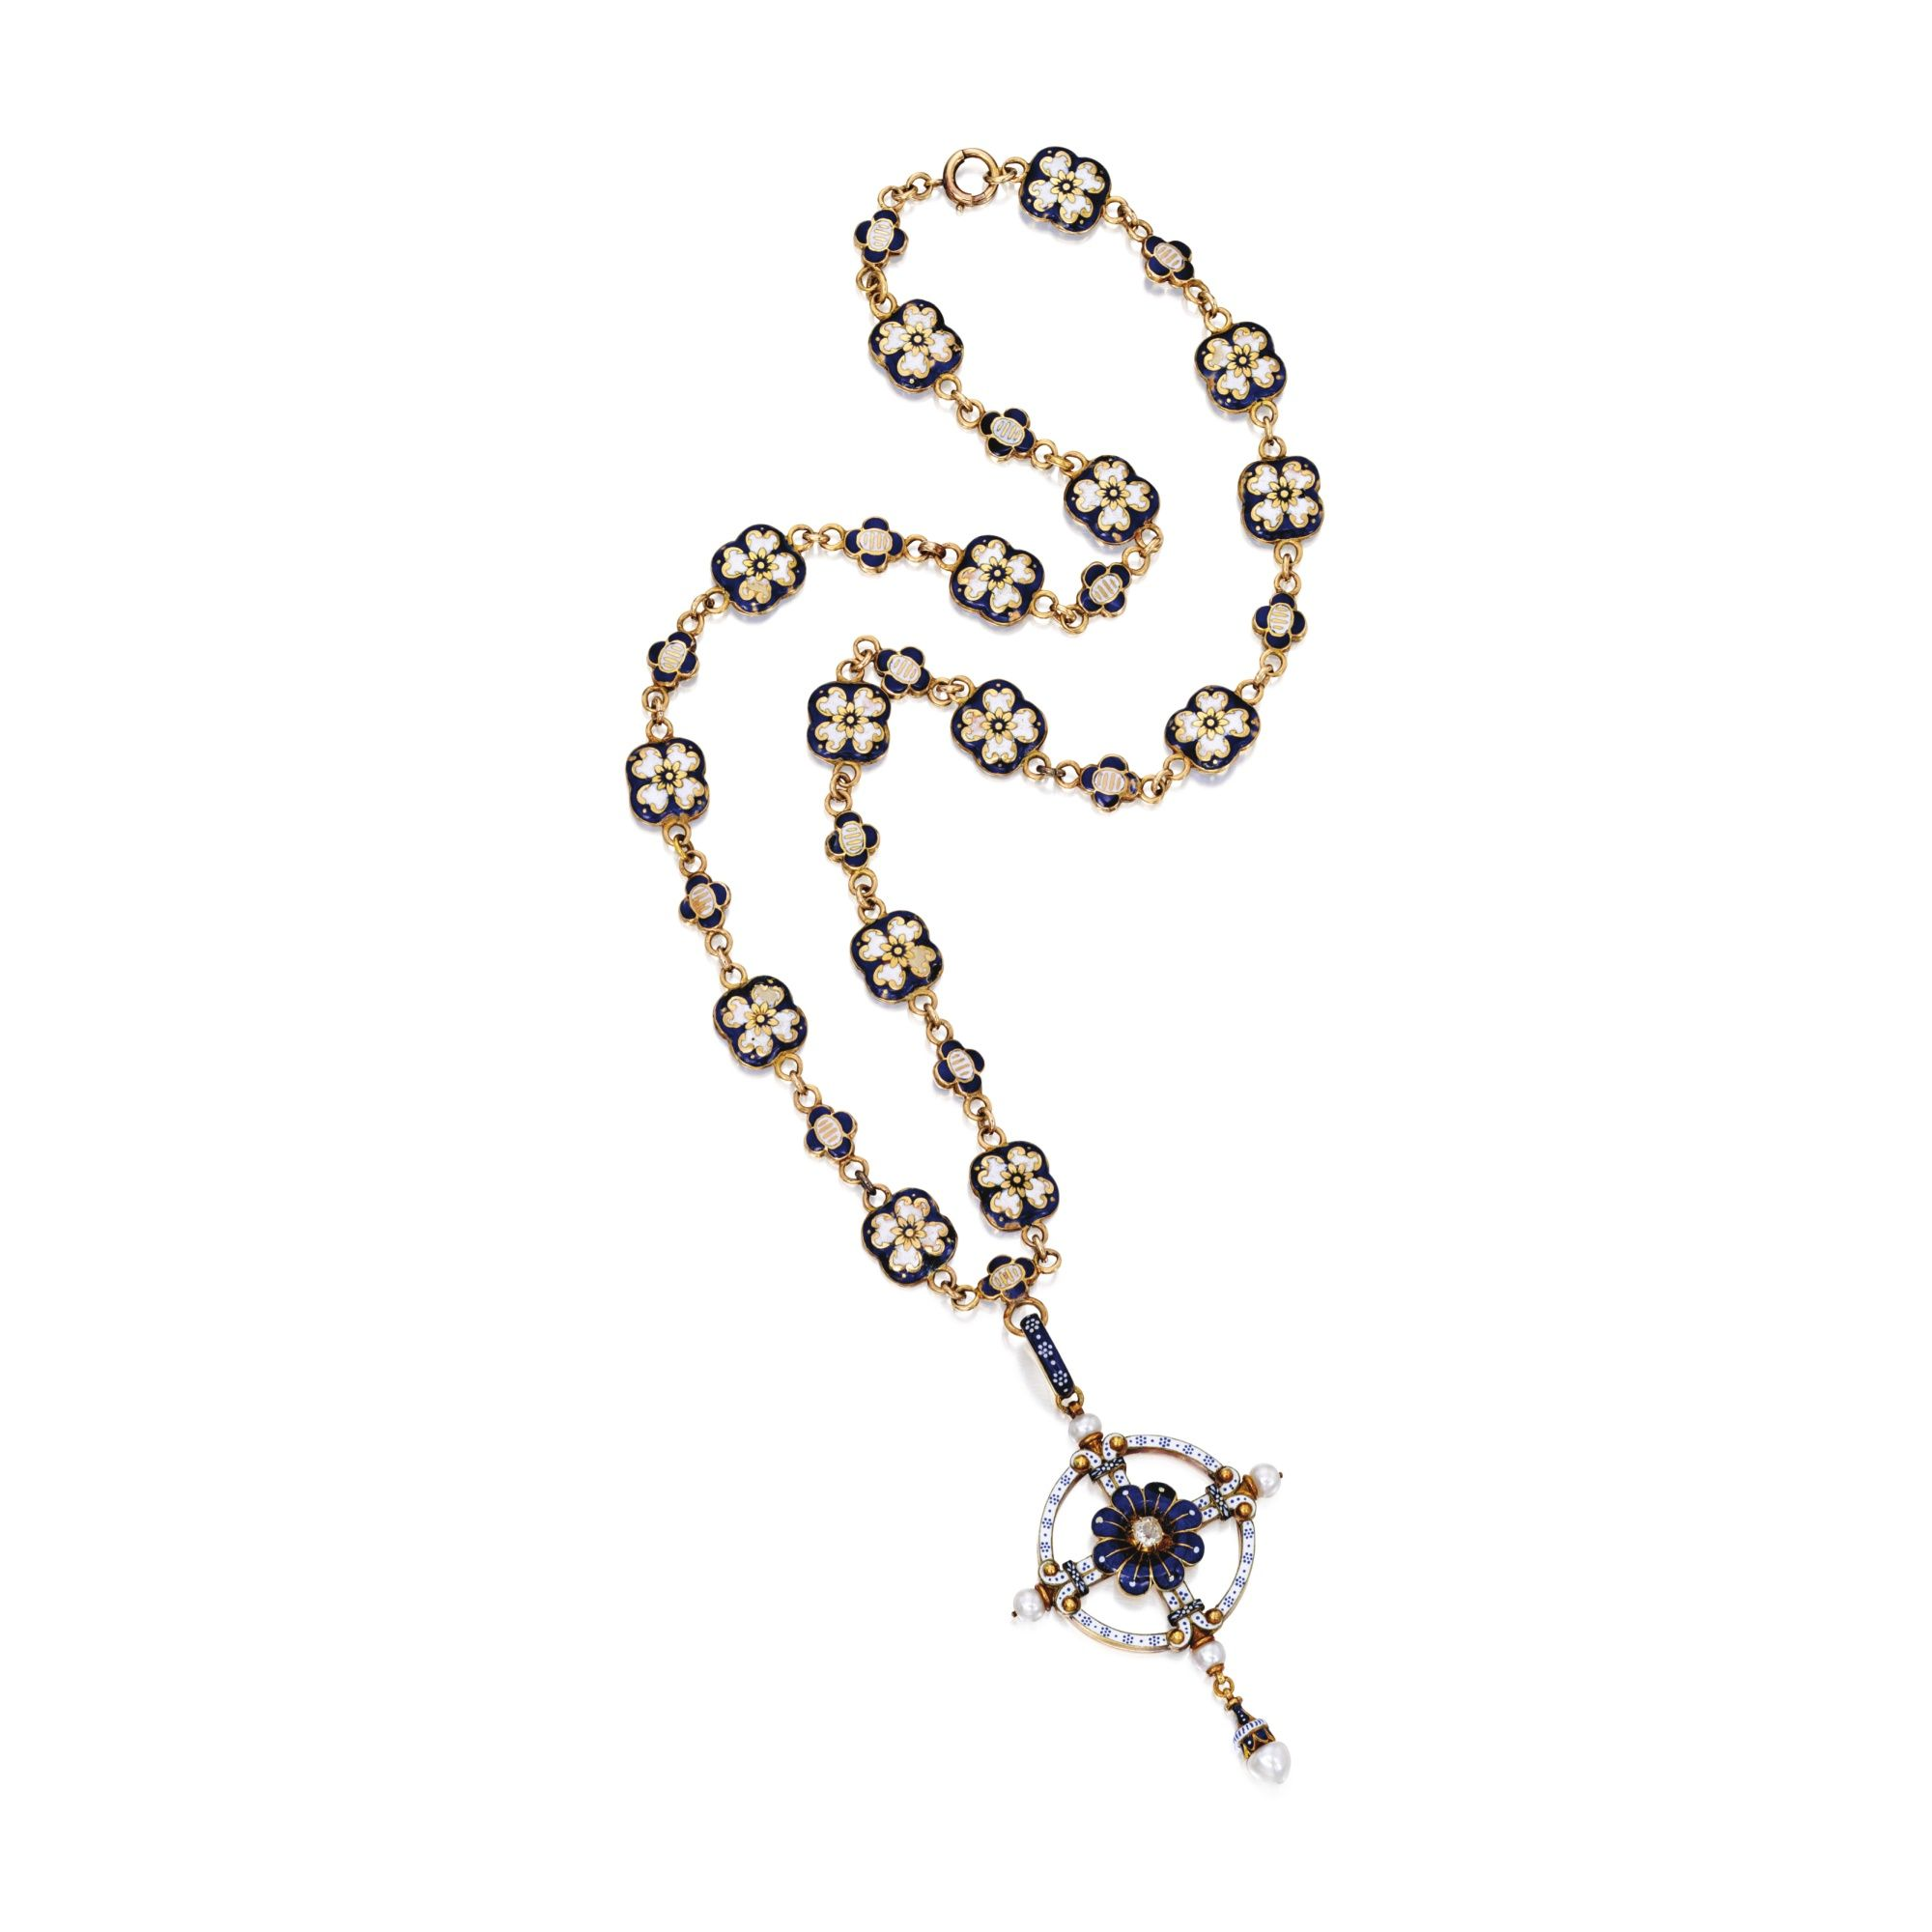 Gold enamel pearl and diamond pendantnecklace the floretshaped